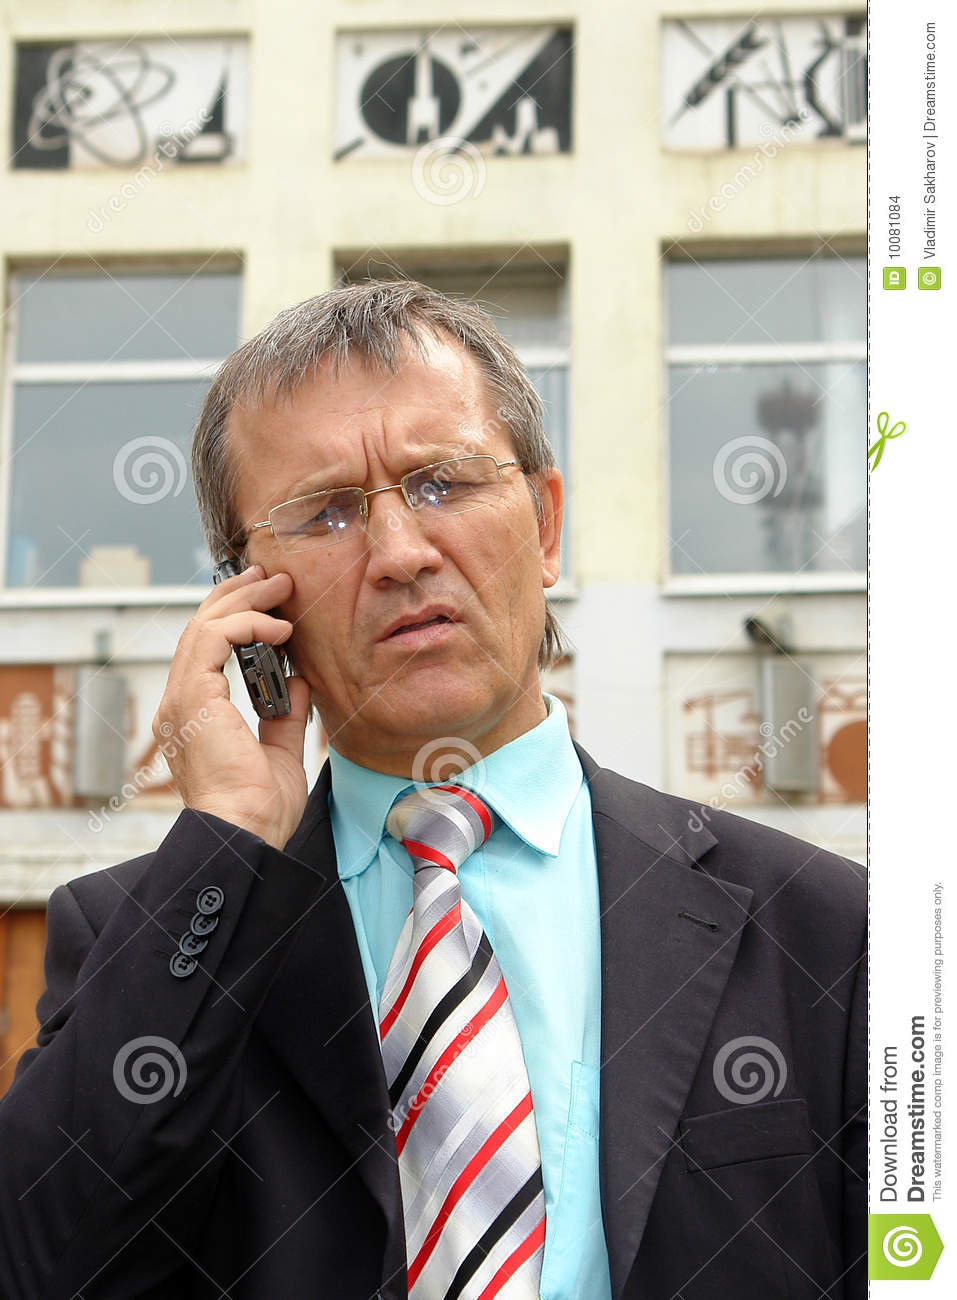 Download Telephone call stock photo. Image of spectacles, eyeglasses - 10081084